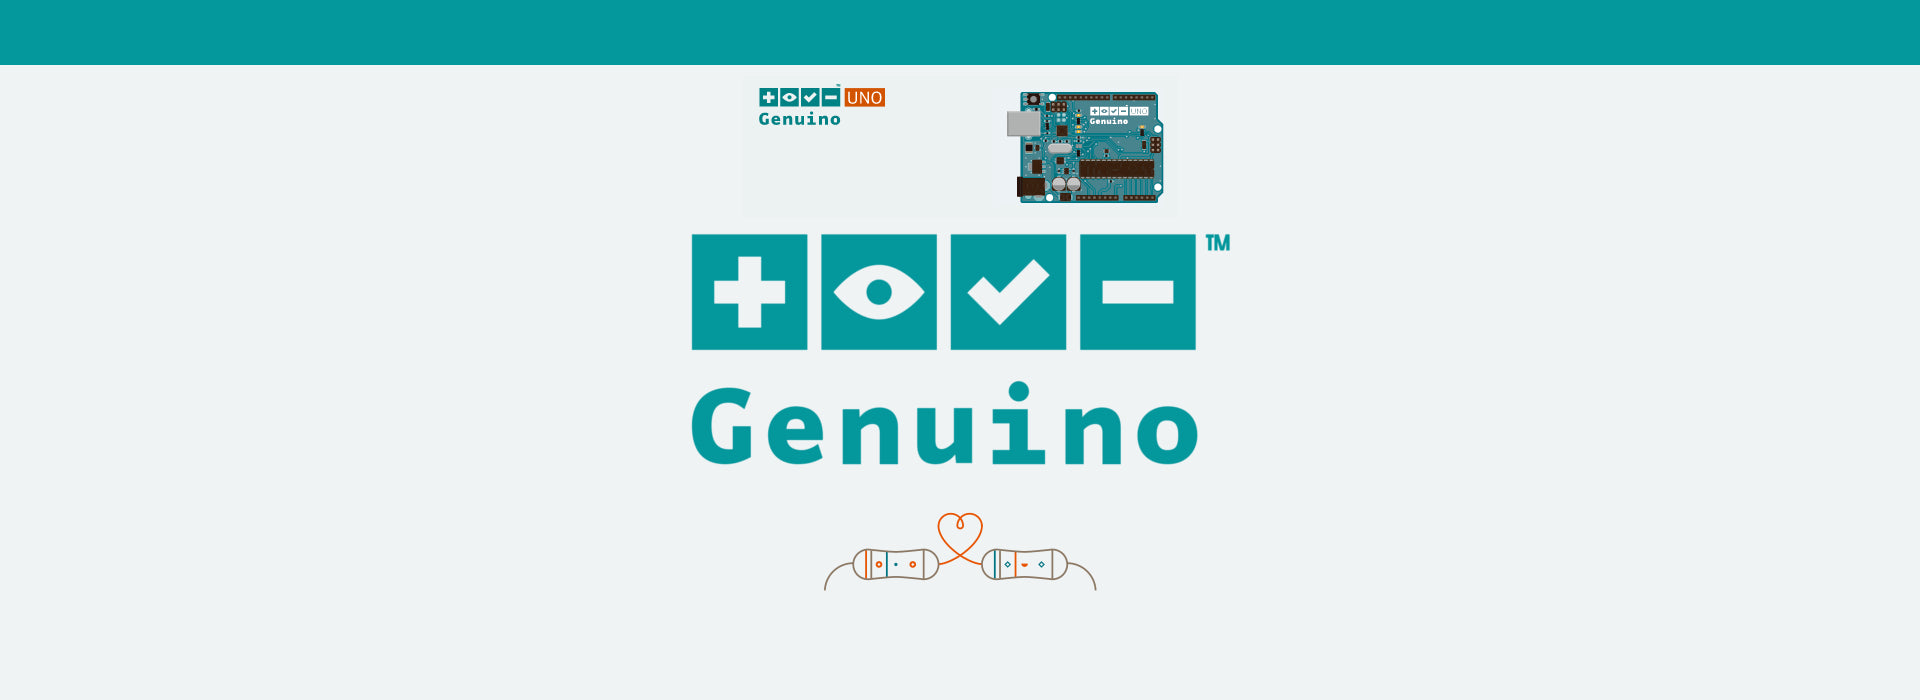 Genuino Uno Rev 3